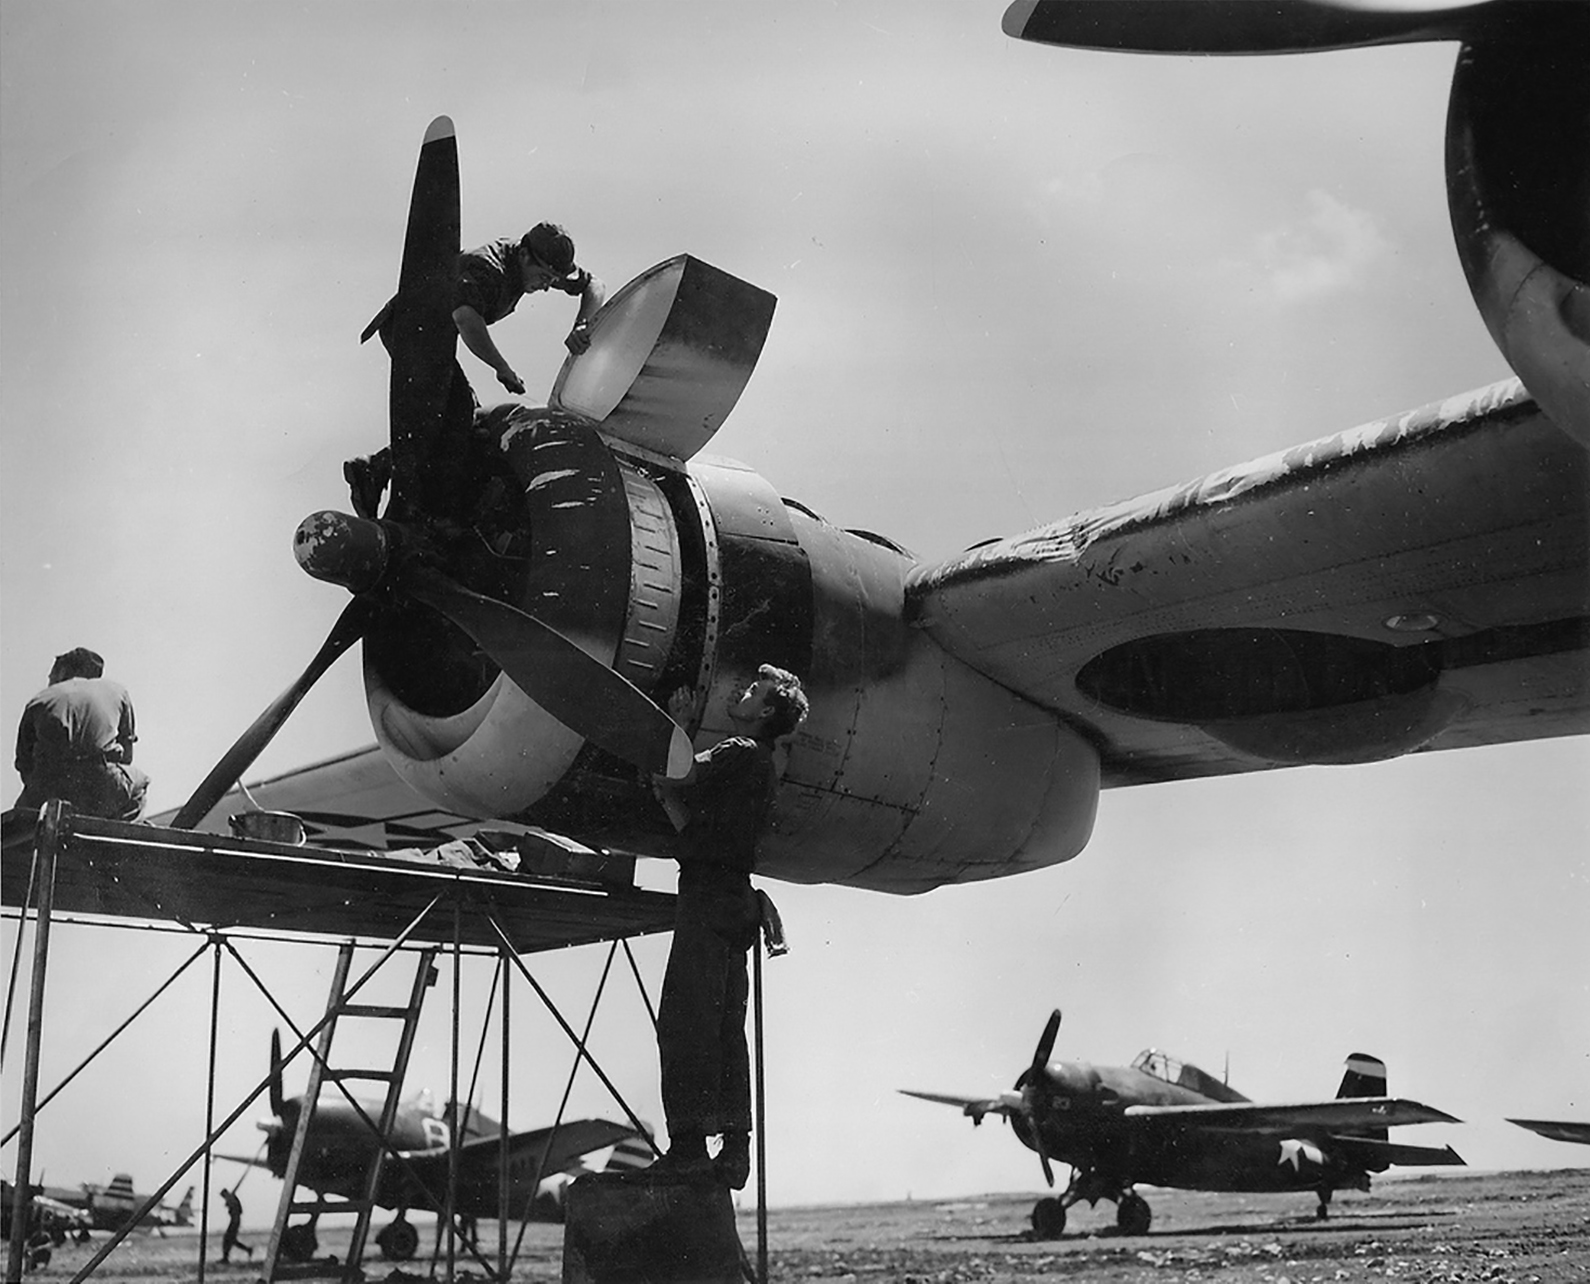 Grumman F6F 5 Hellcat VF 12 White 8 with a Wildcat and PB4Y 1 at a USN maintenance base 01